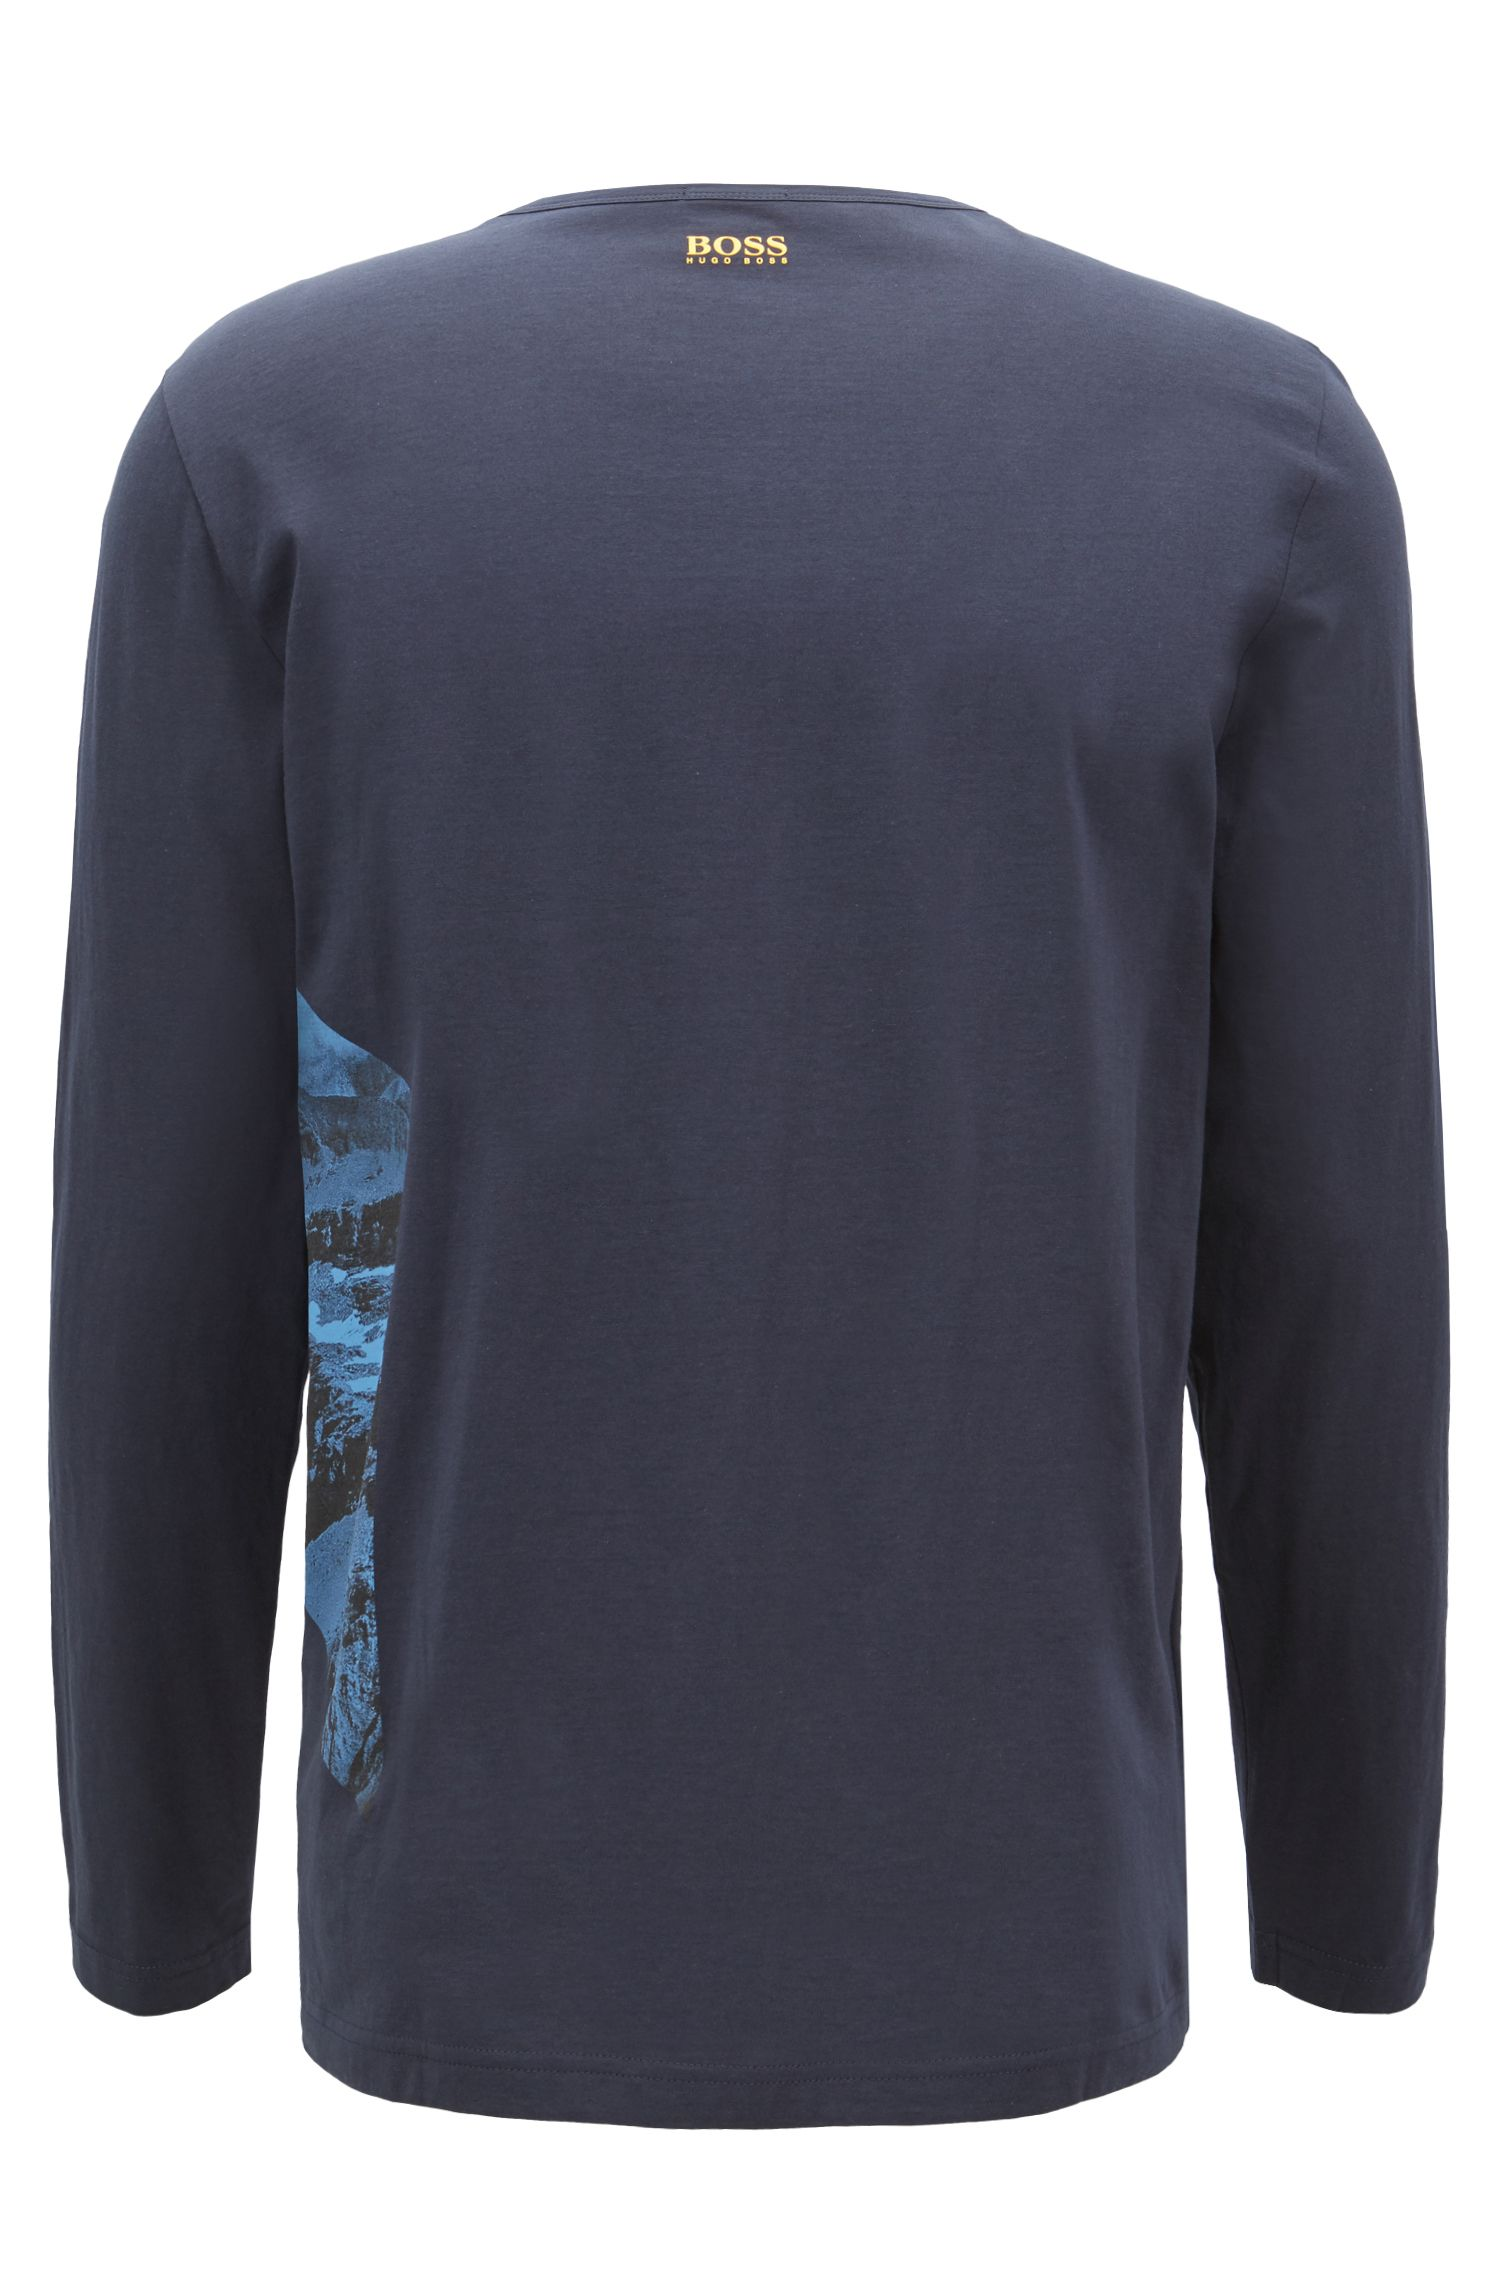 Long-sleeved T-shirt in cotton with photographic logo print, Dark Blue